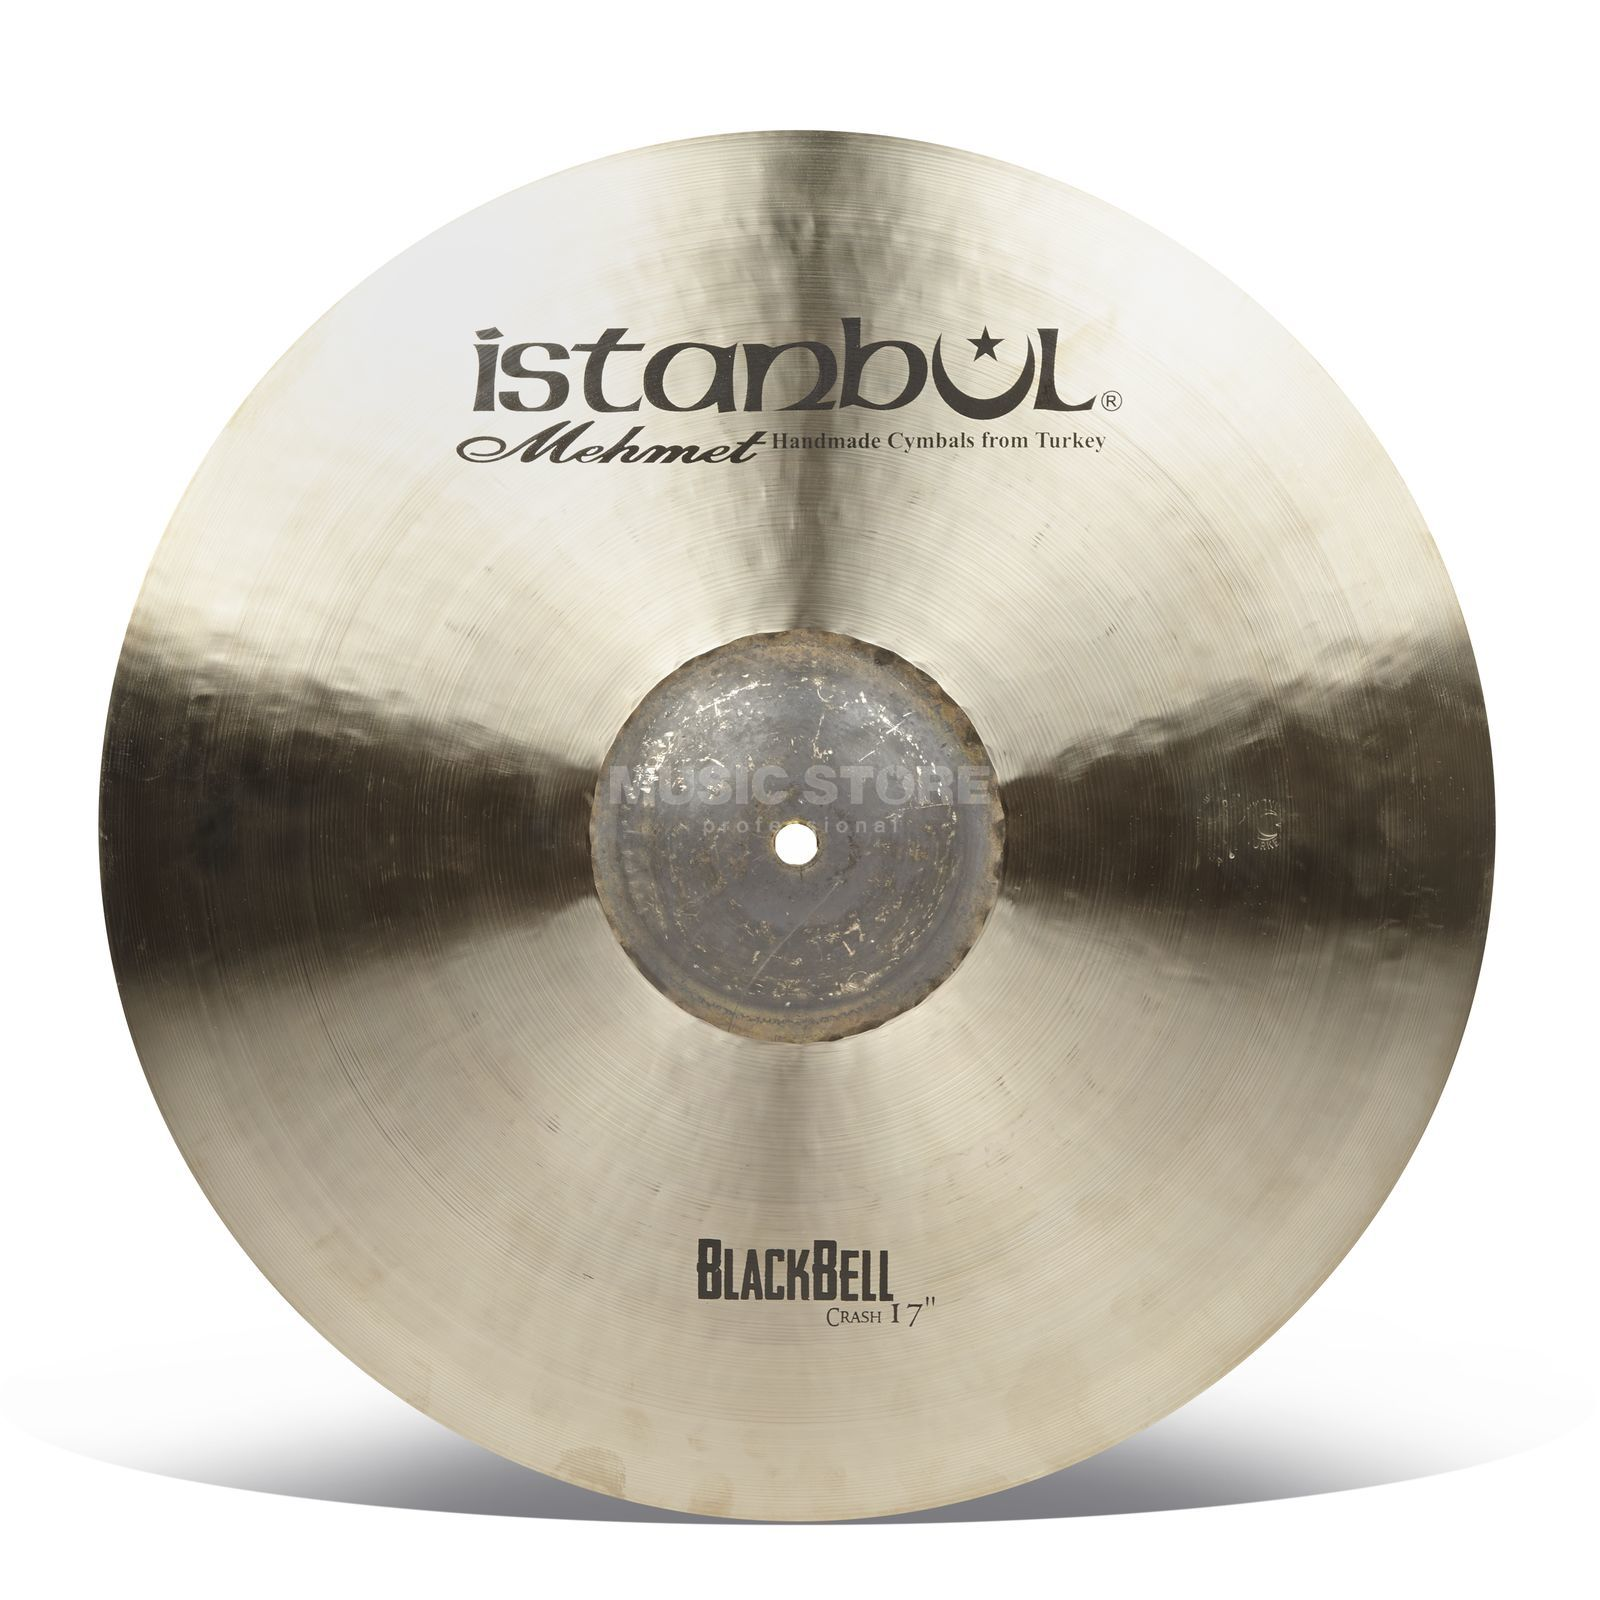 "Istanbul BB-C17 Black Bell Crash 17"", Overstock Product Image"